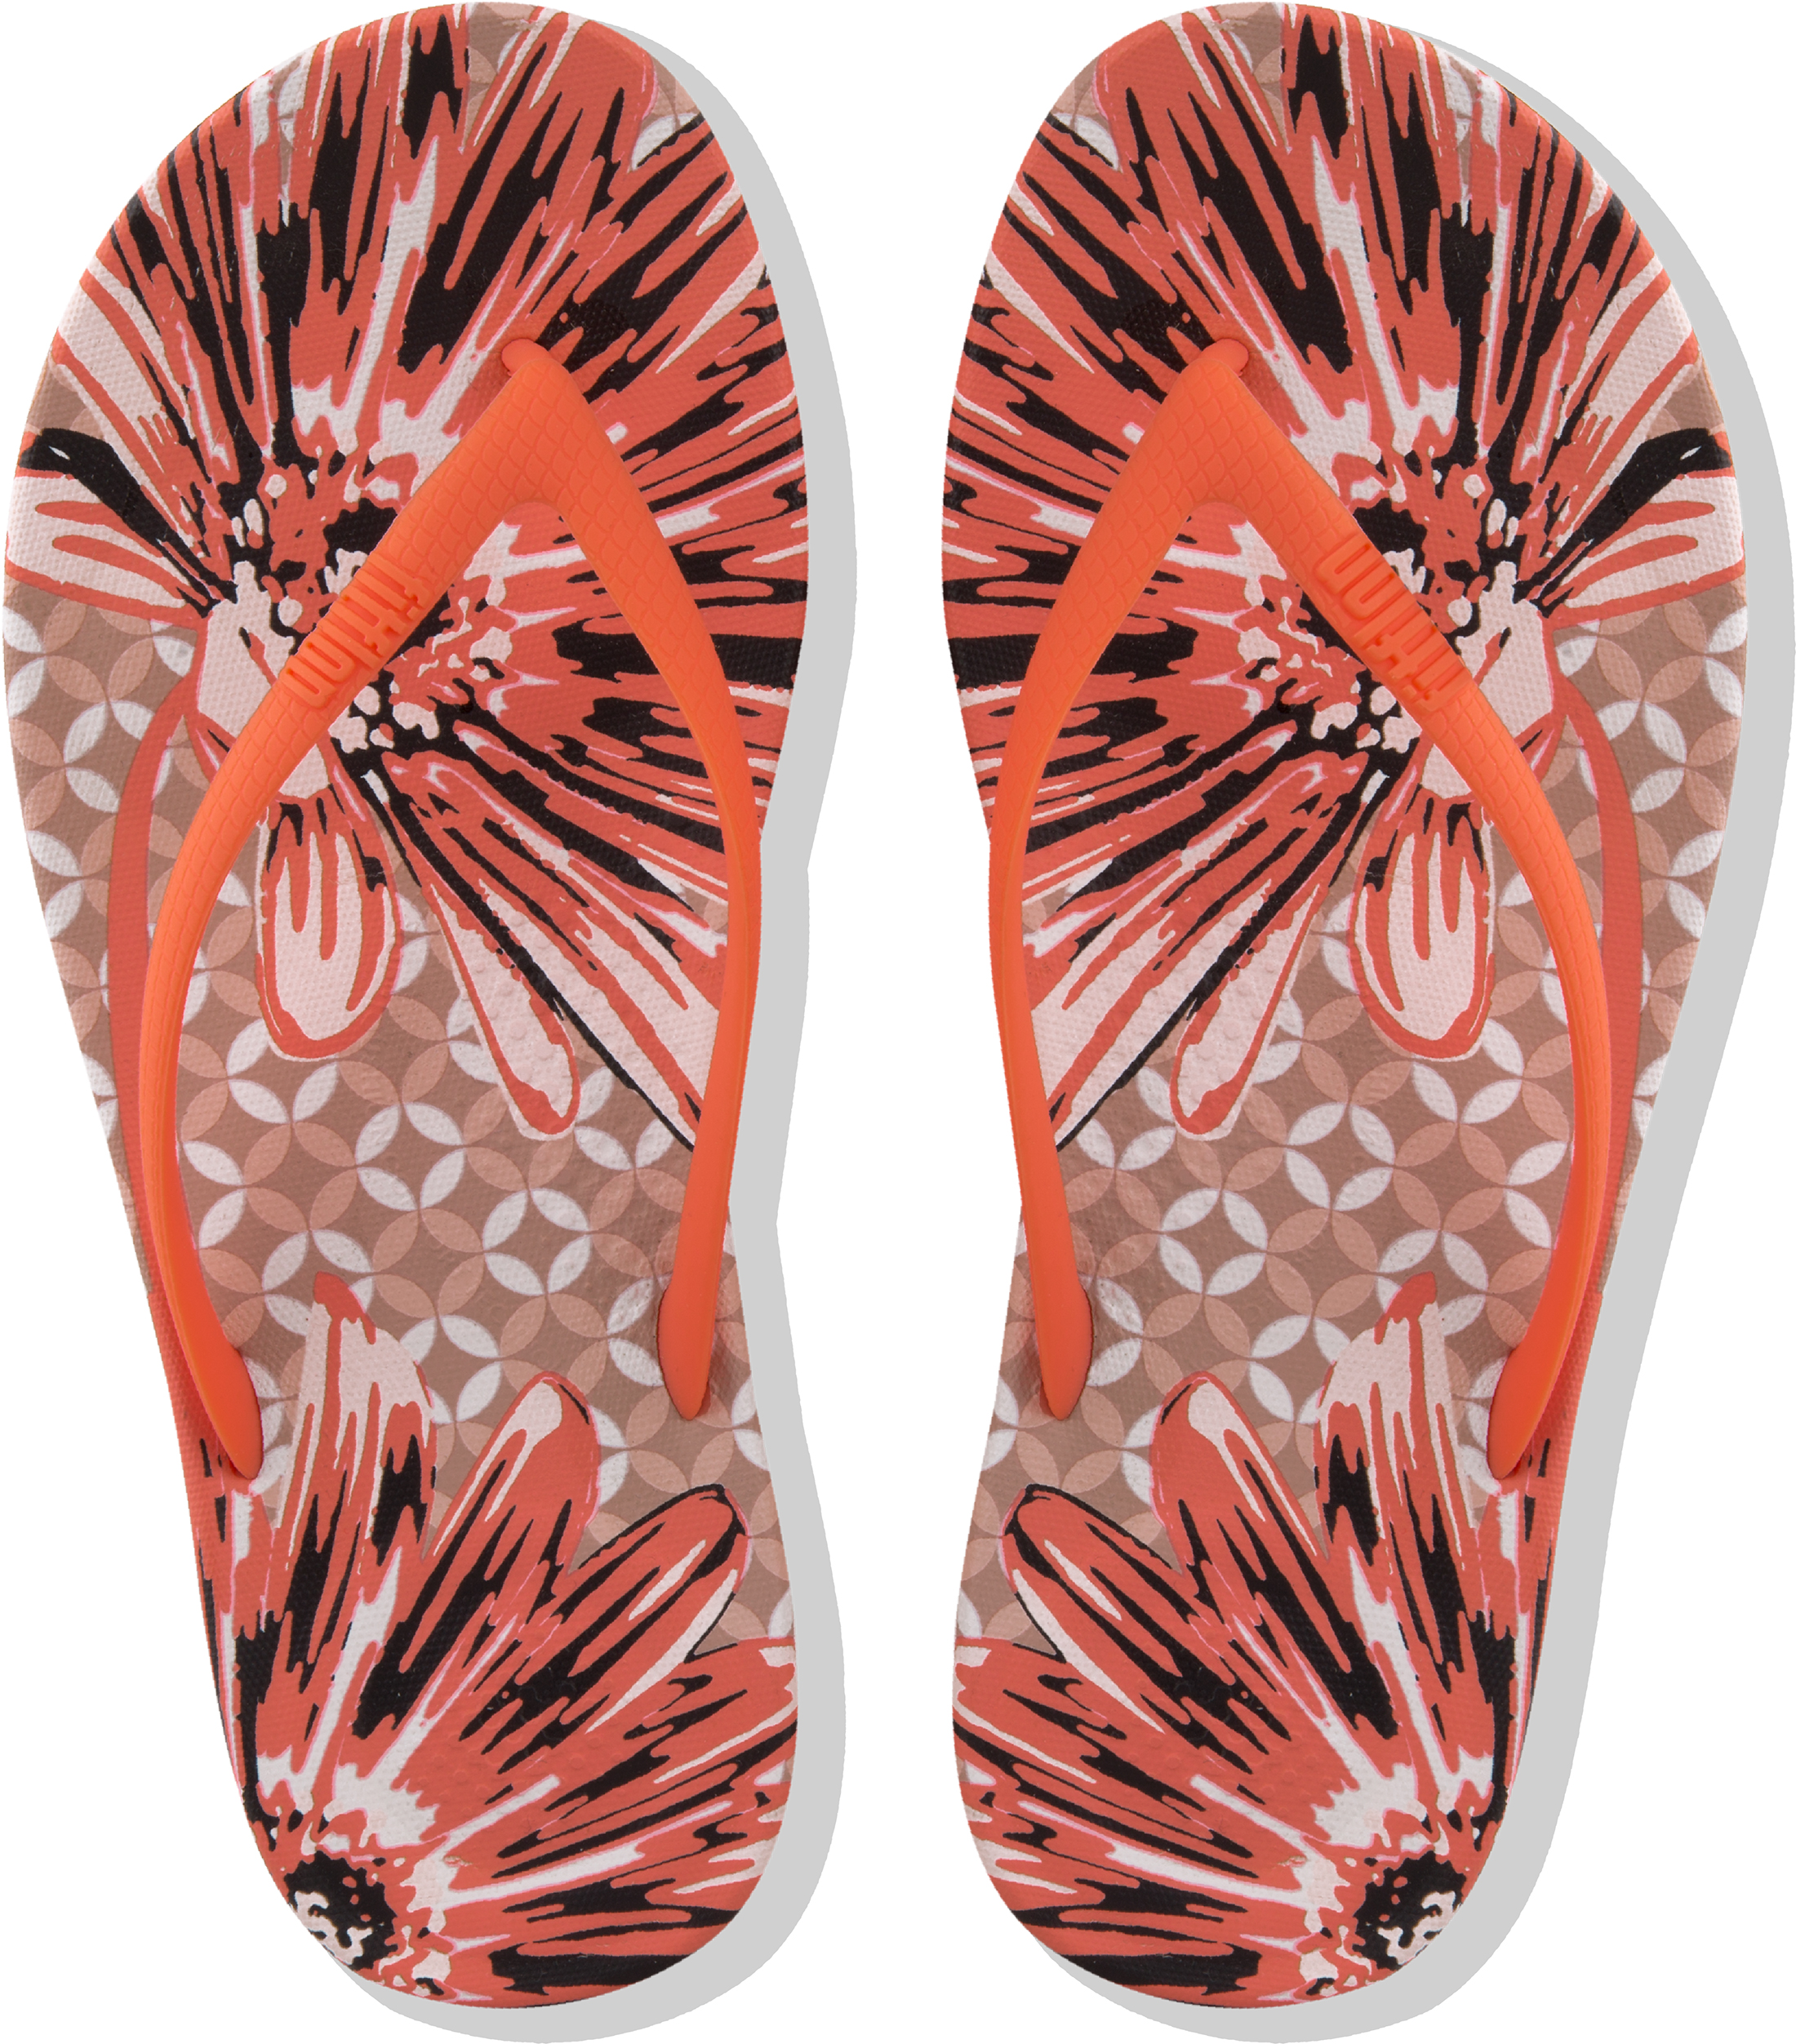 490b1671ad7441 FitFlop Iqushion Ergonomic Flip Flops - Daisy Print Sandals Uk4 Sunshine  Coral. About this product. Picture 1 of 4  Picture 2 of 4  Picture 3 of 4  ...